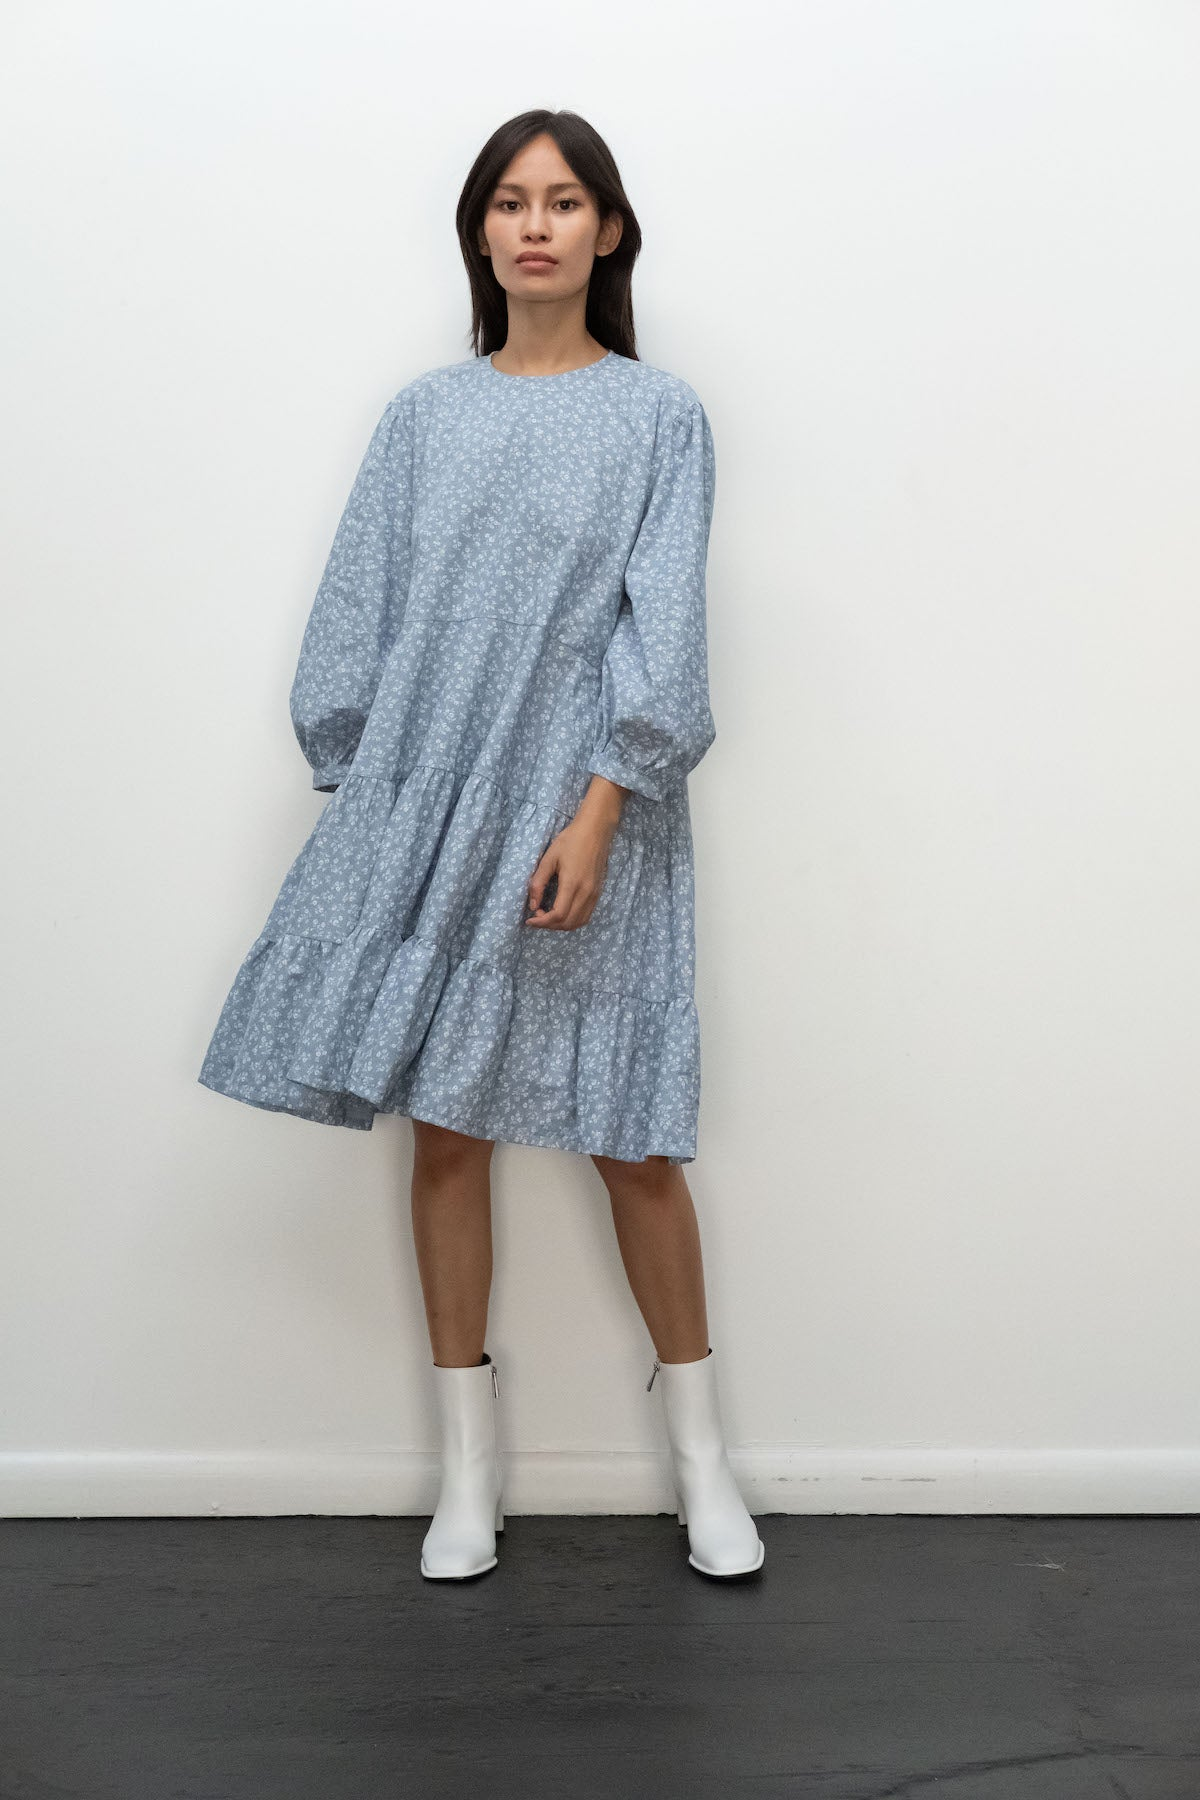 Kurt Lyle x Toit Volant Emmy Dress in Floral Blue Chambray